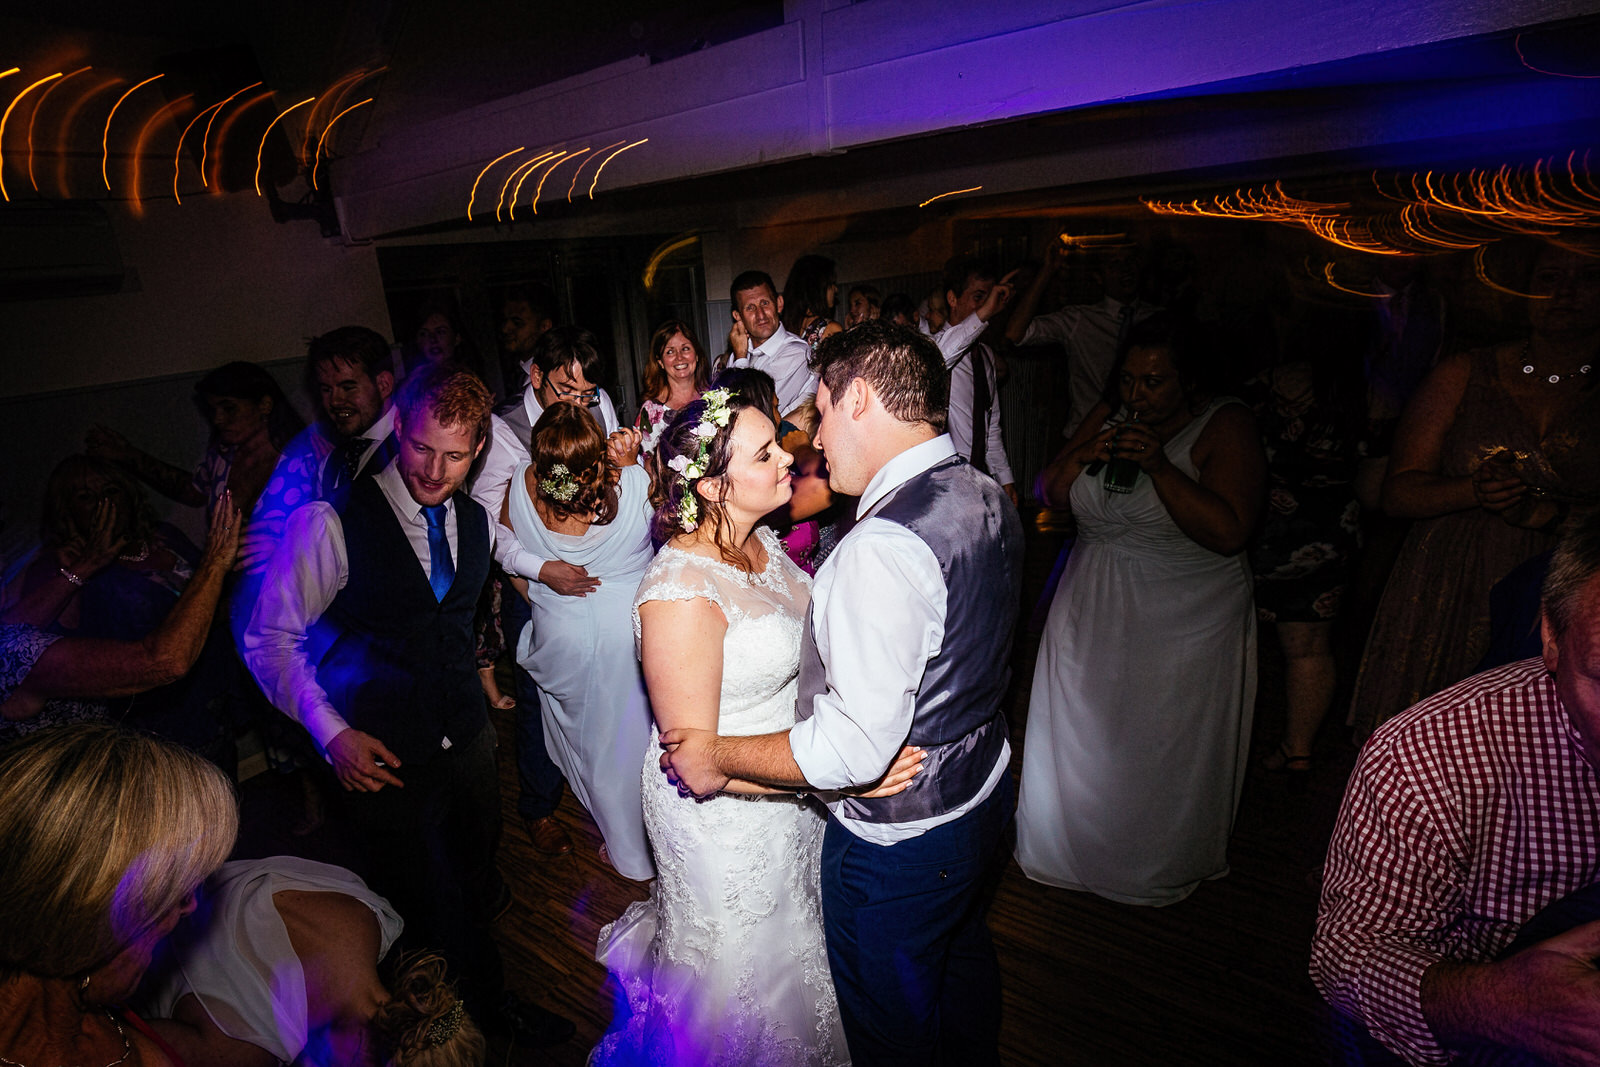 Winkworth-Farm-Wedding-Photographer-143.jpg